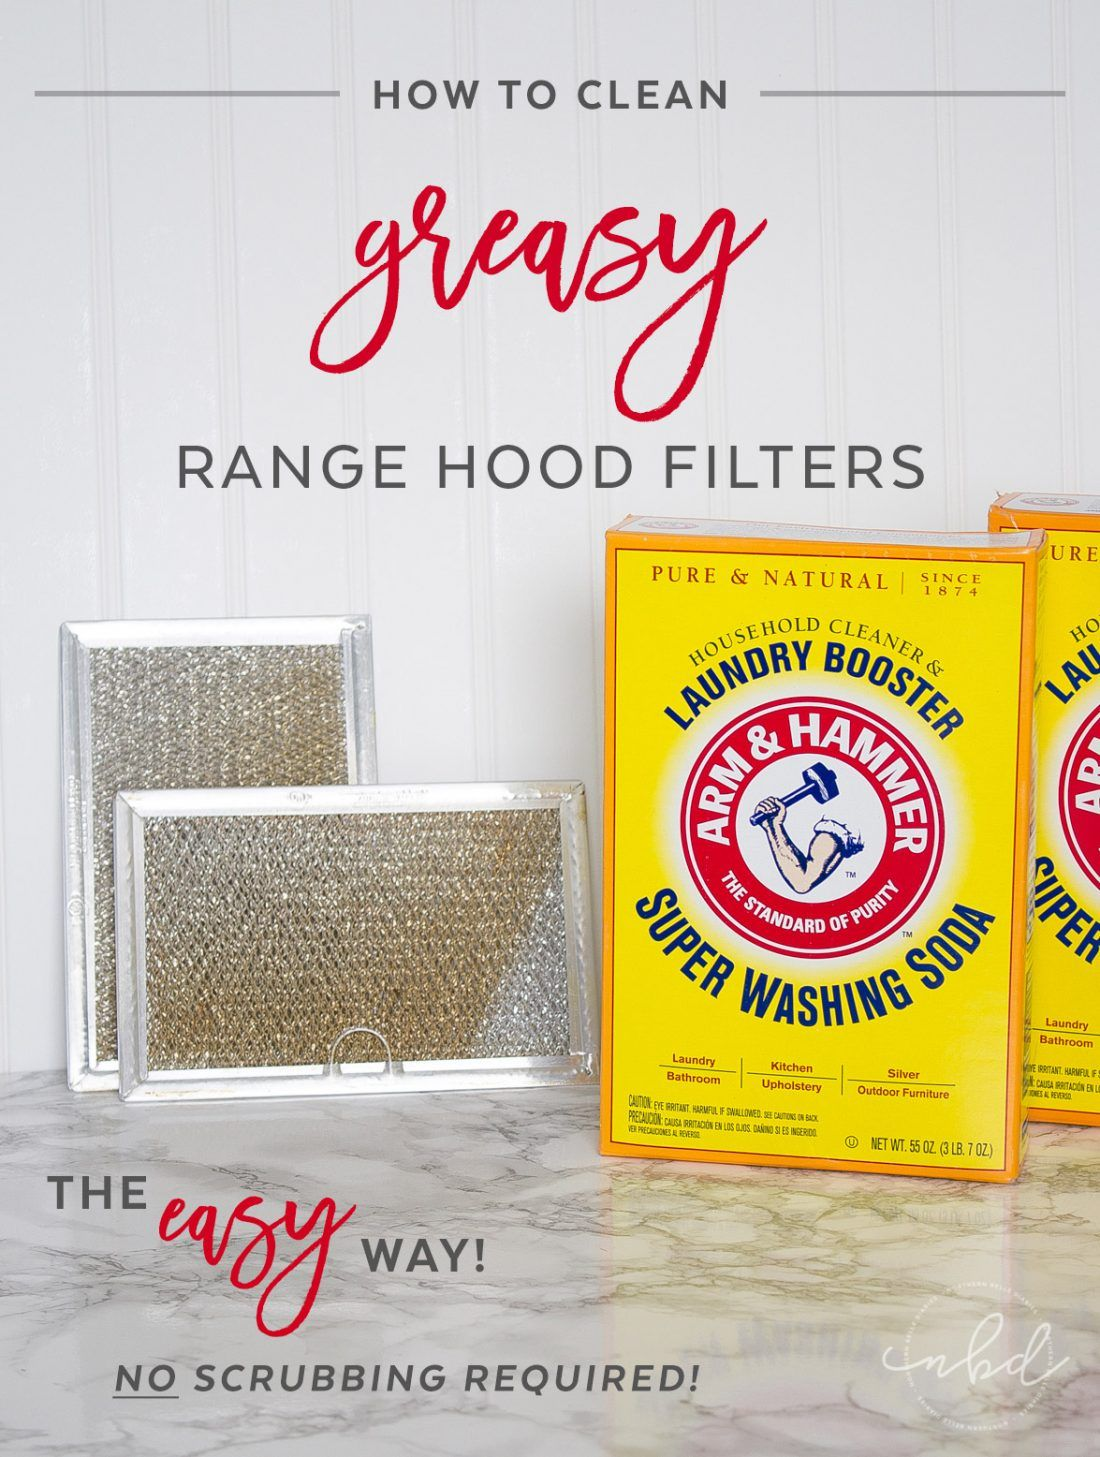 How To Clean A Greasy Range Hood Filter Without Scrubbing Range Hood Filters Cleaning Hacks Clean Dishwasher